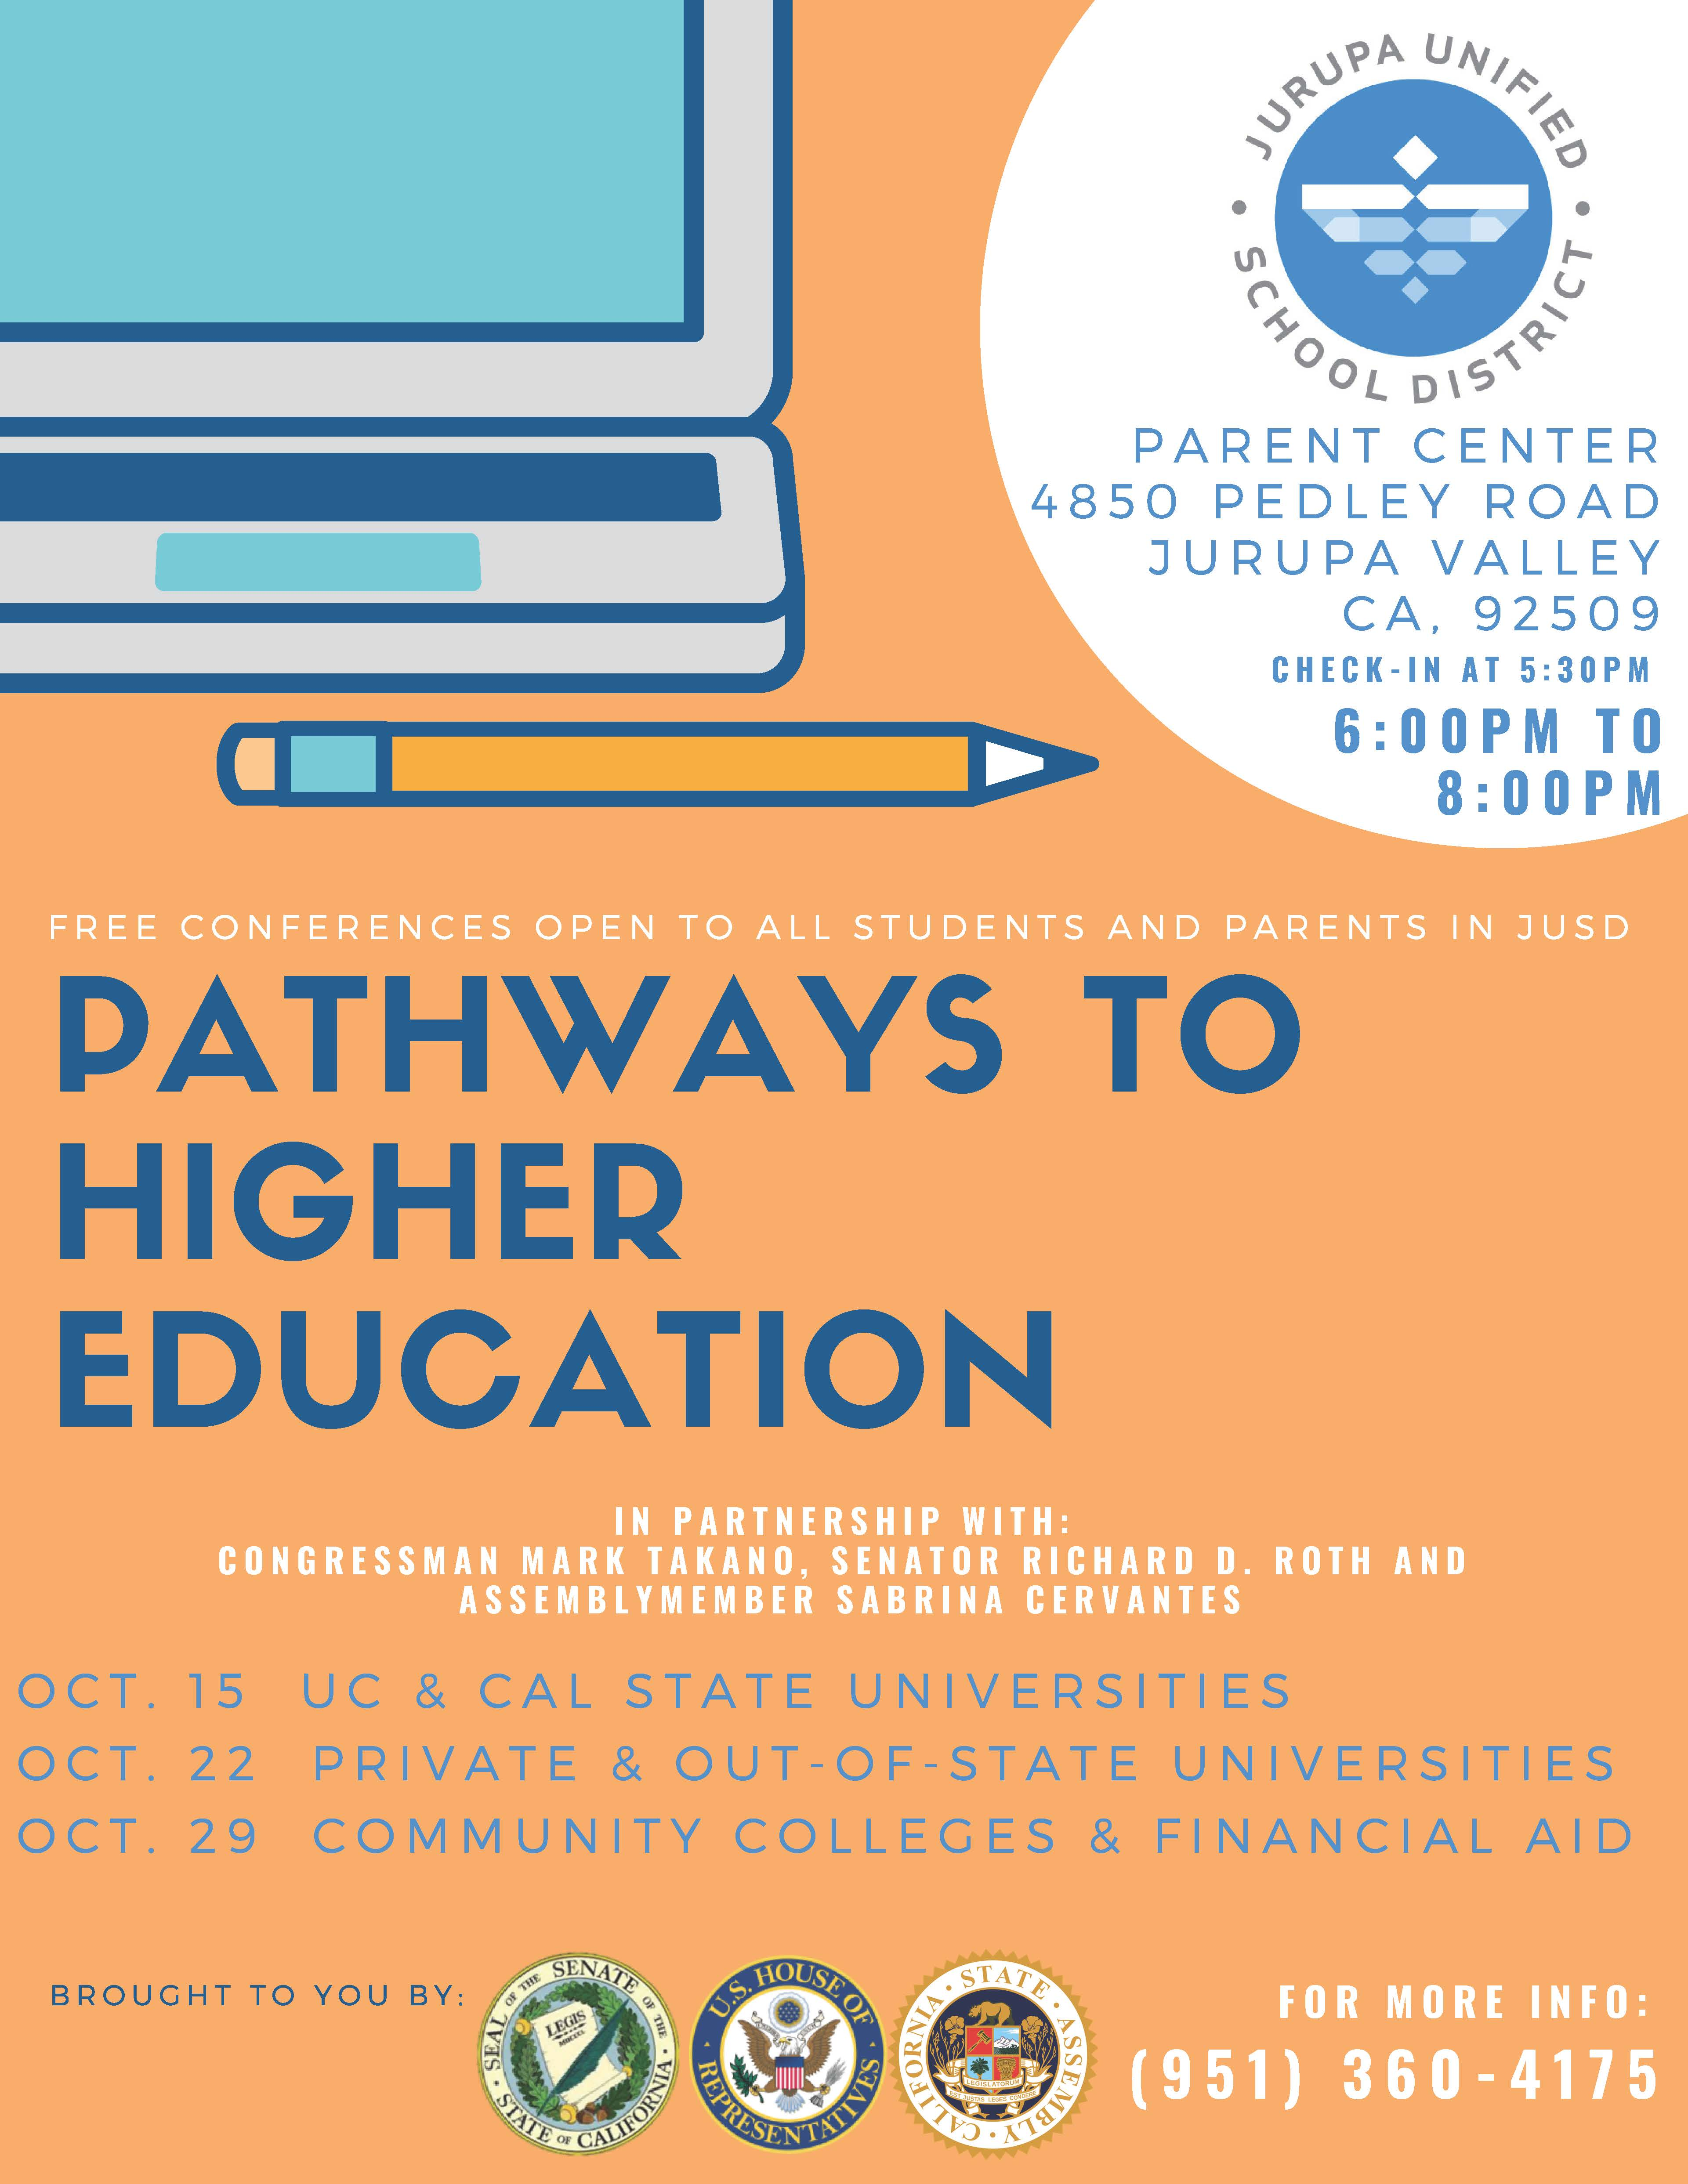 Pathways Flyer FINAL. 10.10.18_Page_1.jpg